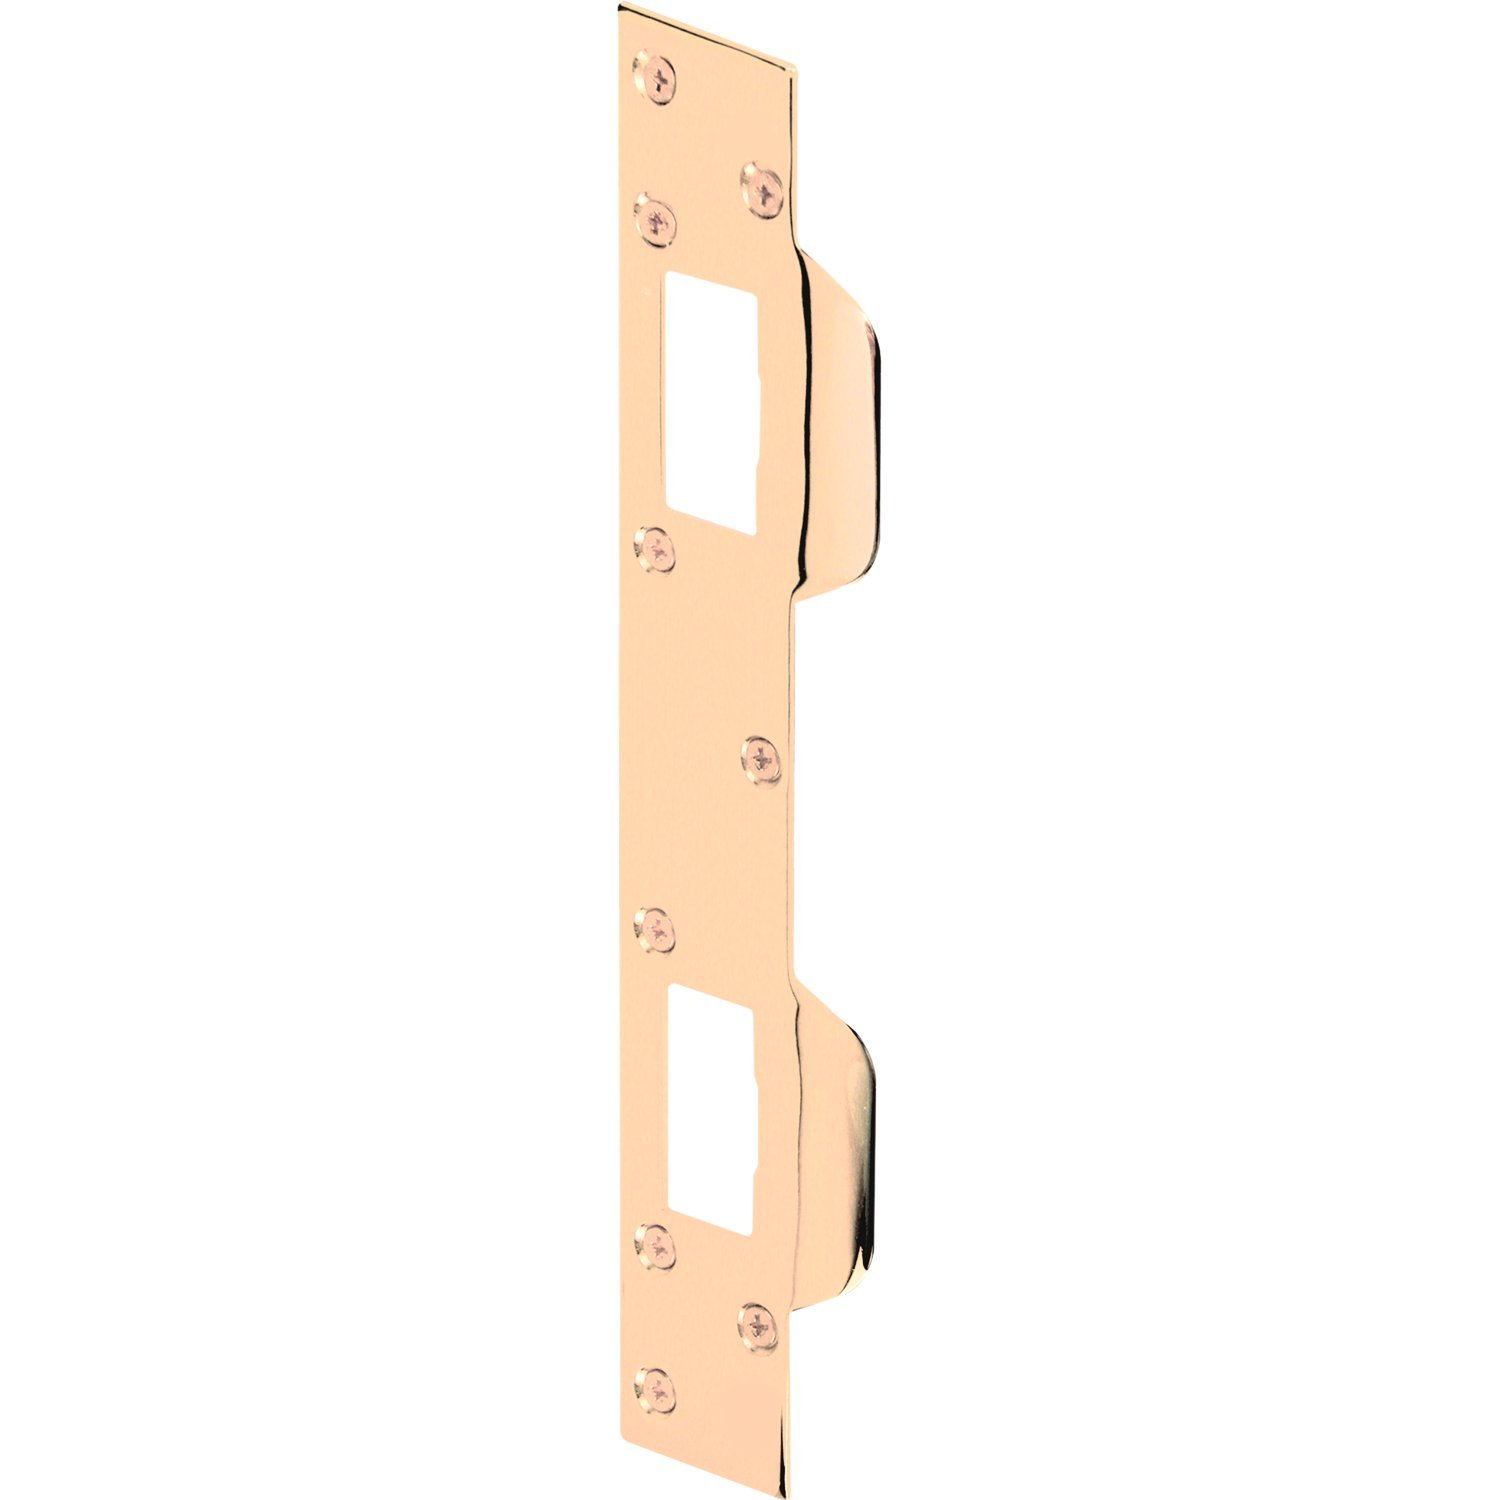 Prime-Line MP9480 Door Strike, Accommodates 5-1/2 in. to 6 in. Hole Centers, Steel, Brass Plated, Pack of 1 6